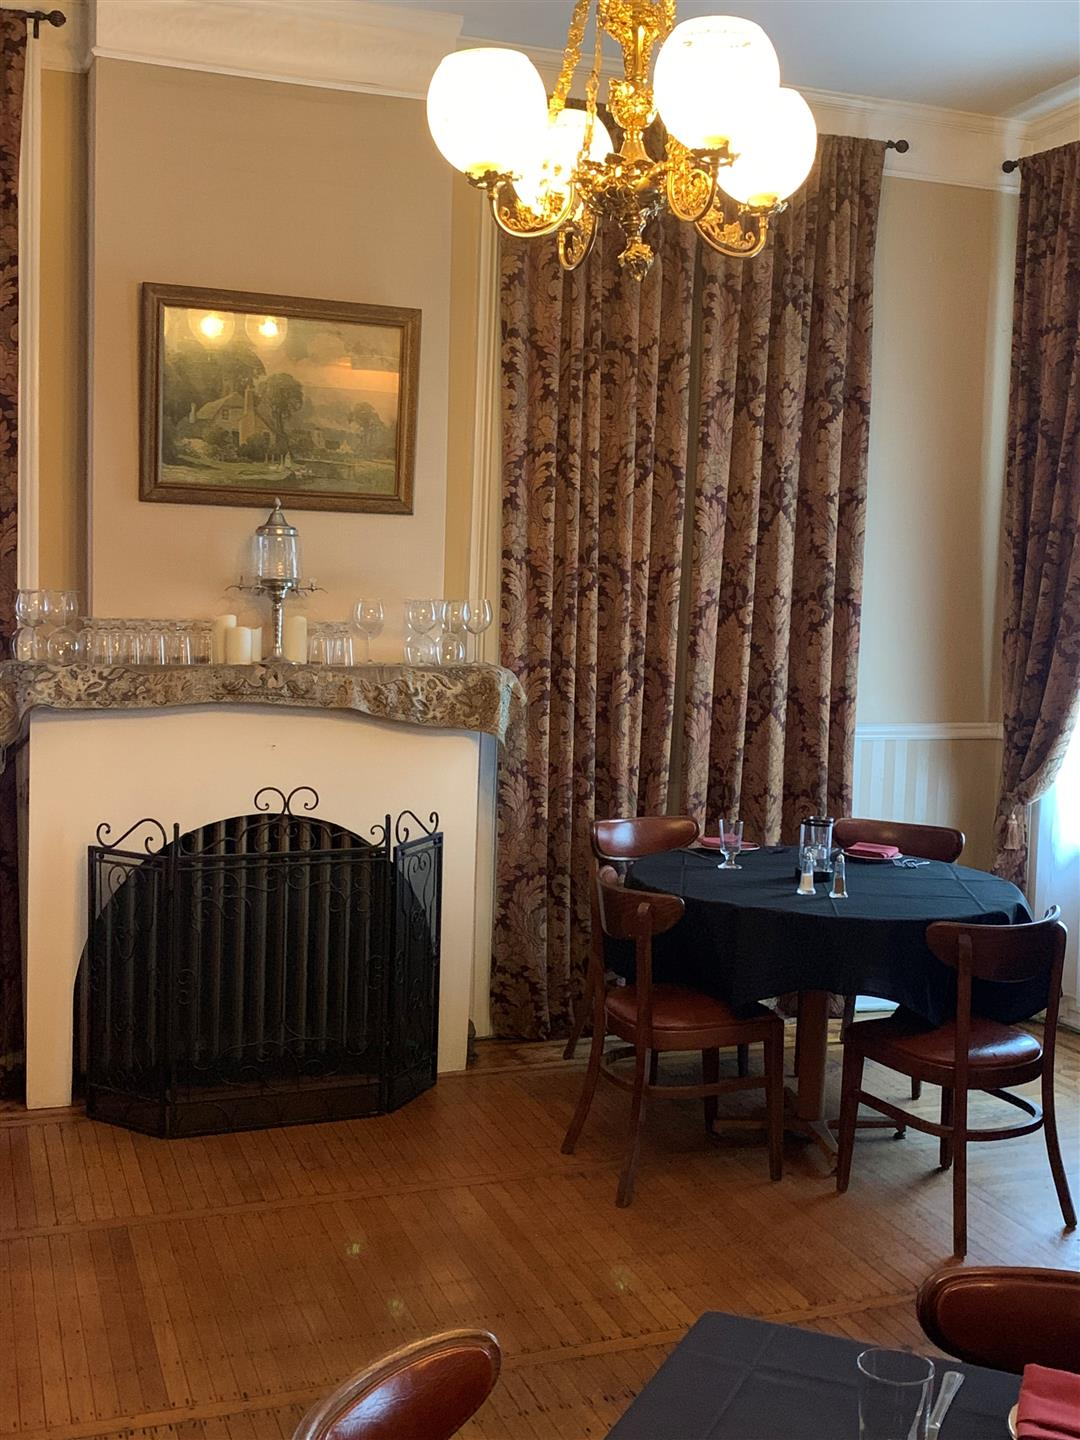 dining room filled with set tables and chairs with a fire place and curtains hanging over the window